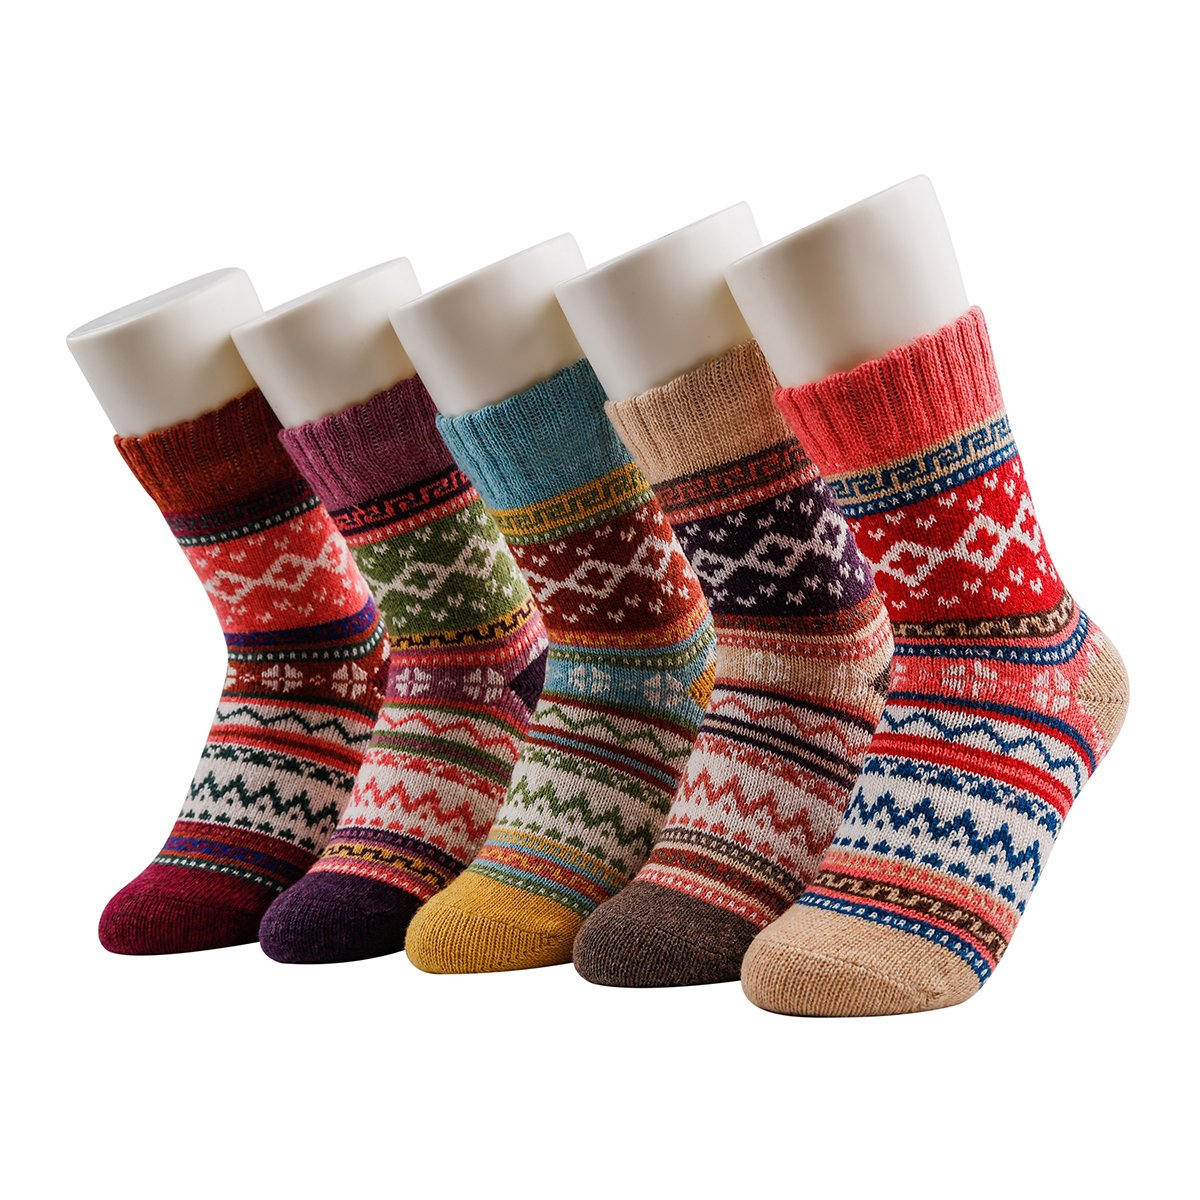 JOYEBUY 5 Pack Winter Fall Women Socks Vintage Style Cotton Knitting Wool Warm Crew Socks (One Size, Style 5) by JOYEBUY (Image #1)